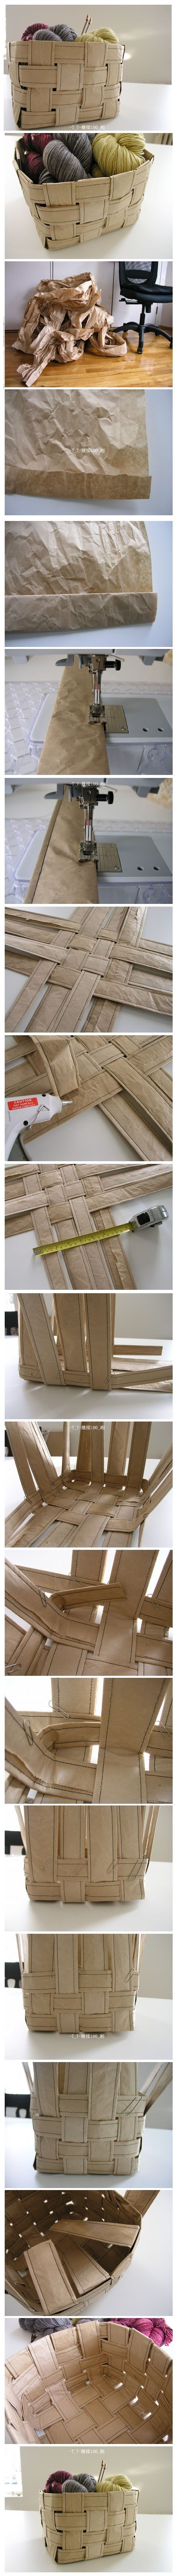 sewing 101 recycled paper basket by Brett This is brilliant. Must try someday.